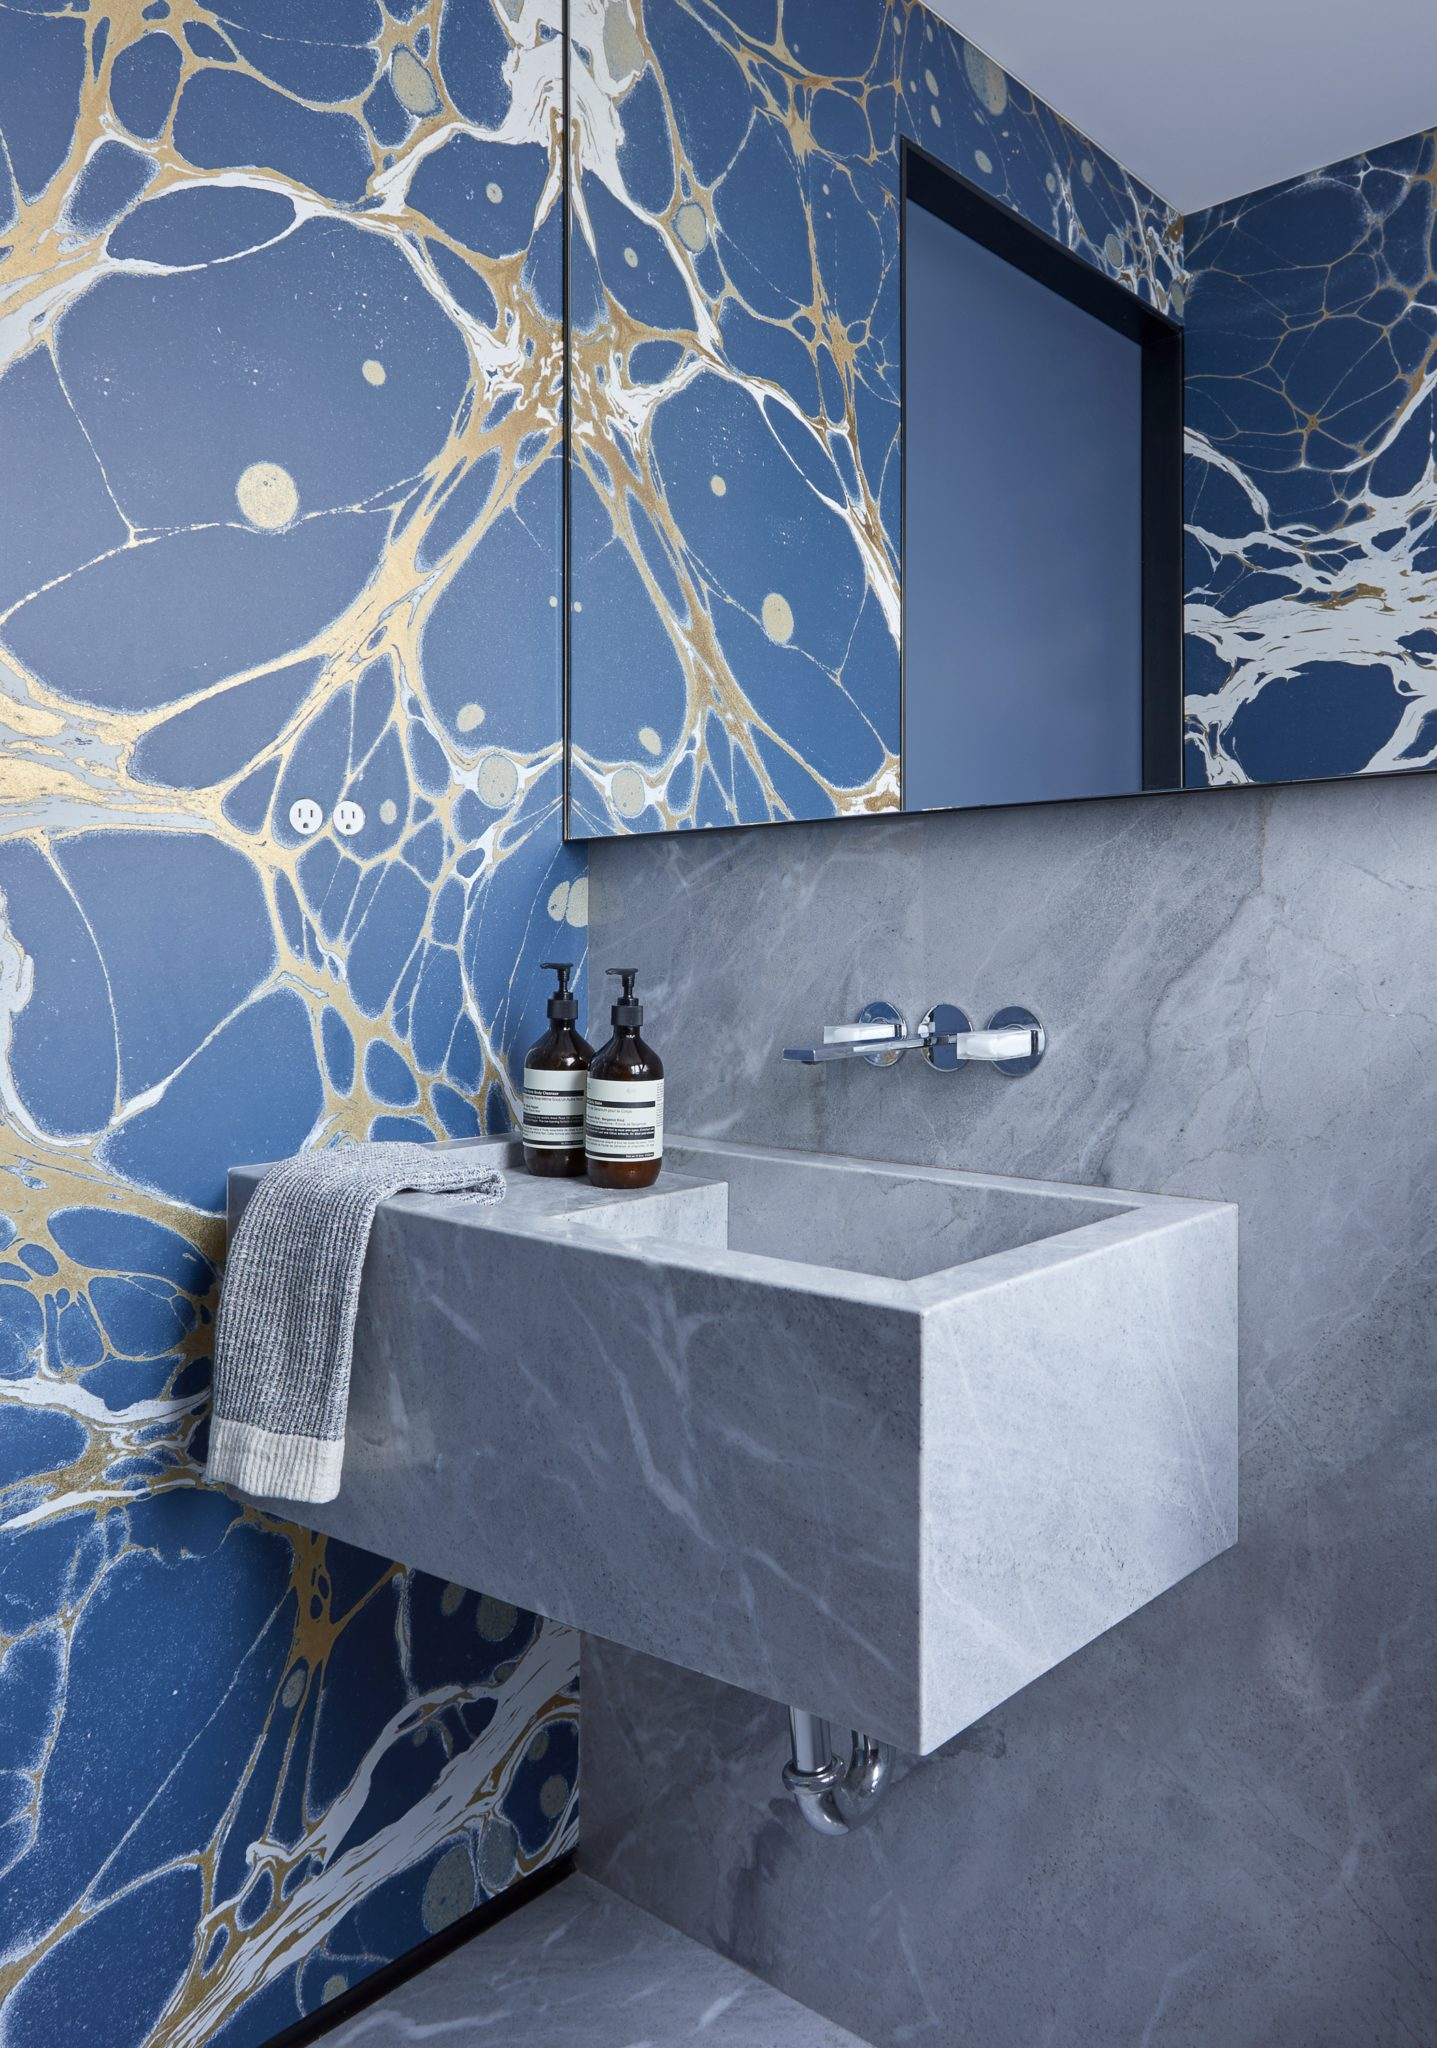 Upper East Side Powder Room, architecture by Anik Pearson Architects by Studio Riga